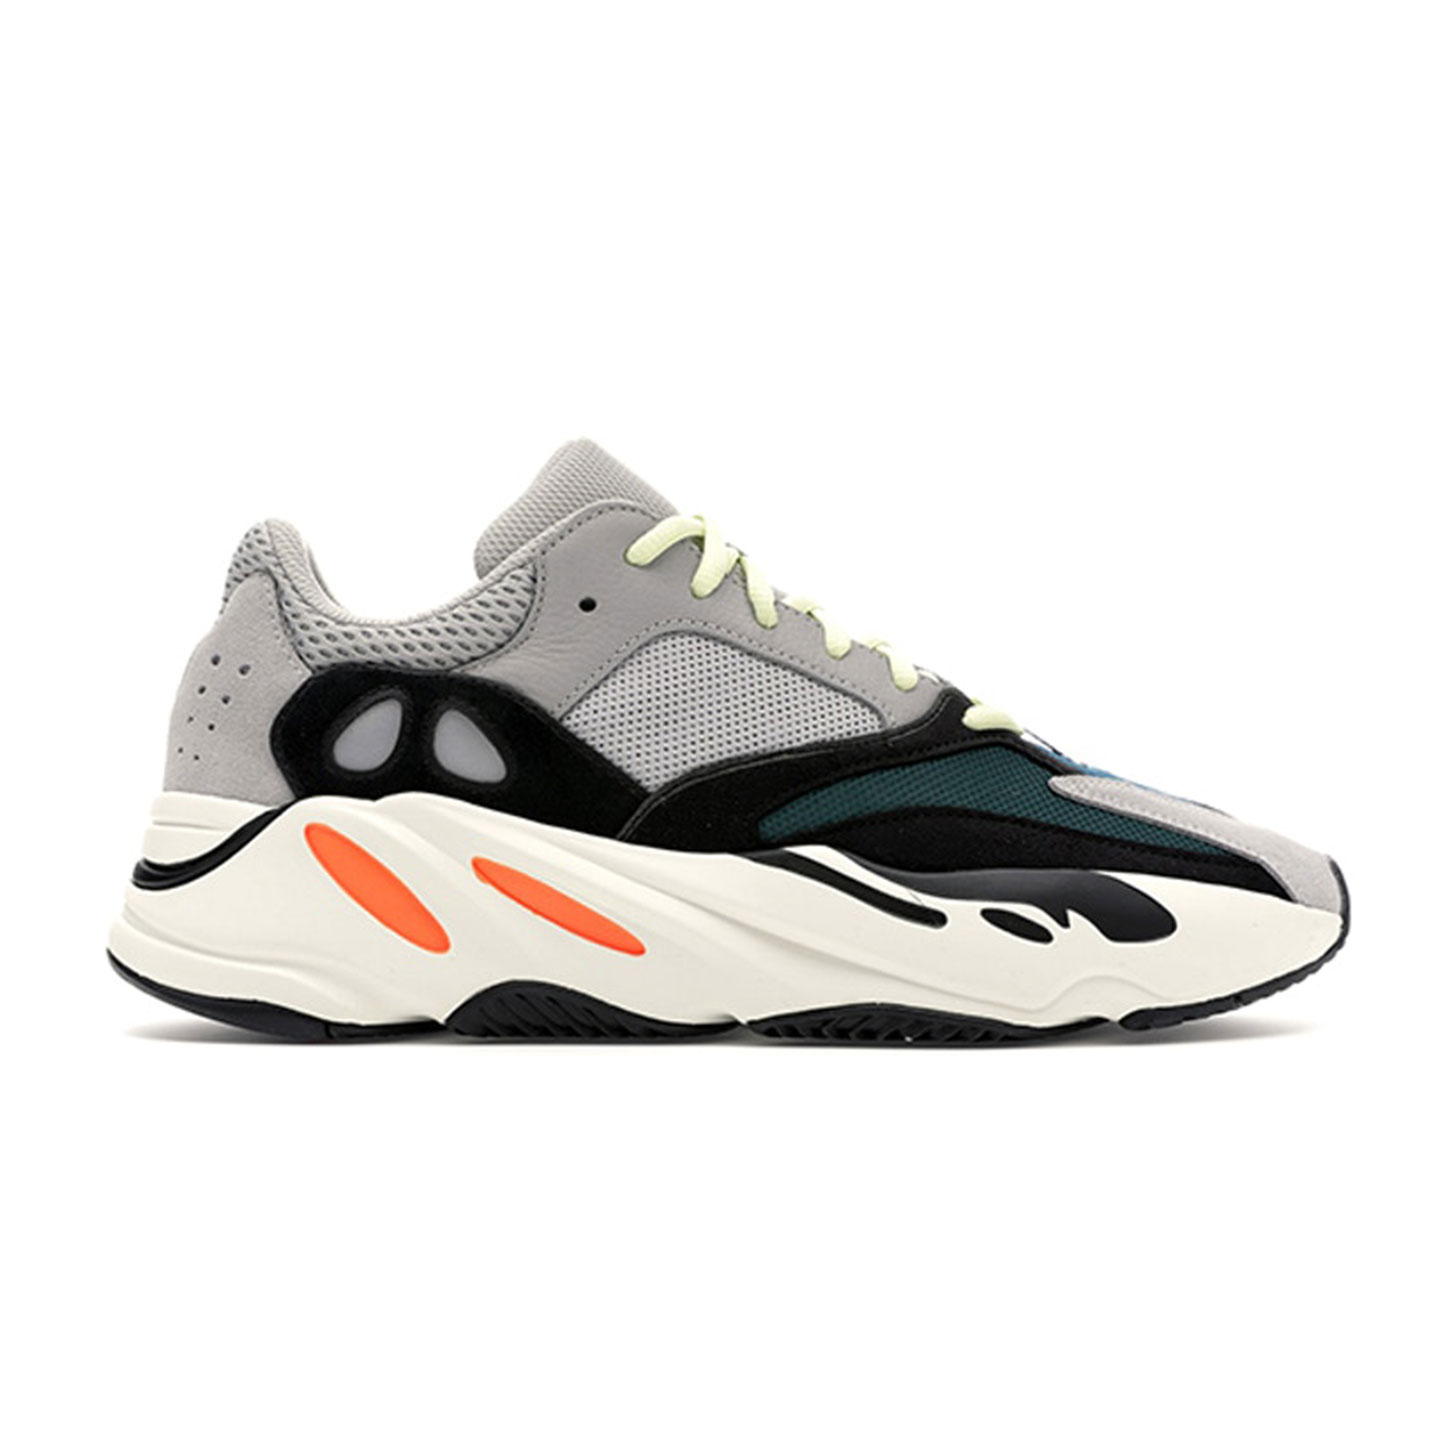 Yeezy-Boost-700-Wave-Runner-Solid-Grey